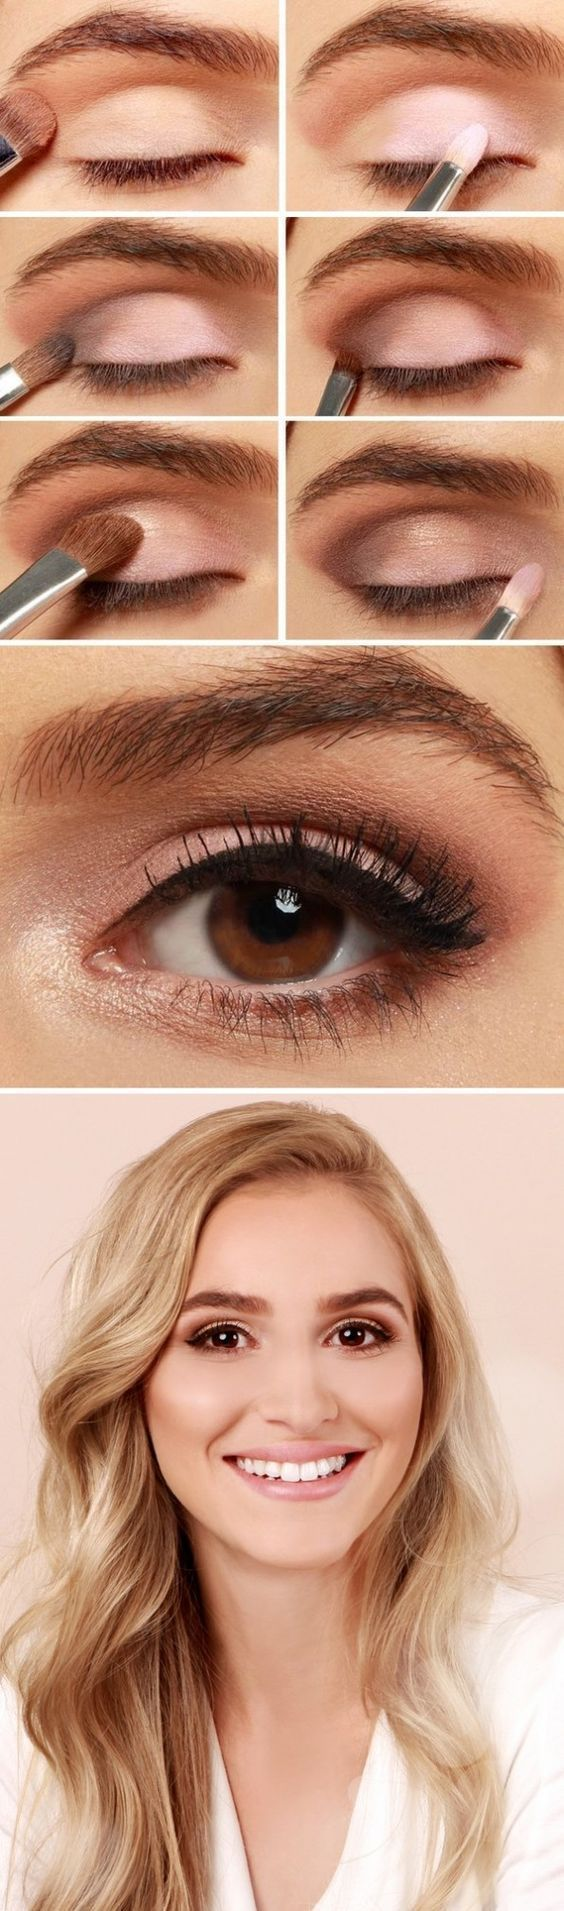 27 pretty makeup tutorials for brown eyes makeup tutorial mac 27 pretty makeup tutorials for brown eyes makeup tutorial mac brown eye makeup tutorial and natural eye make up baditri Image collections